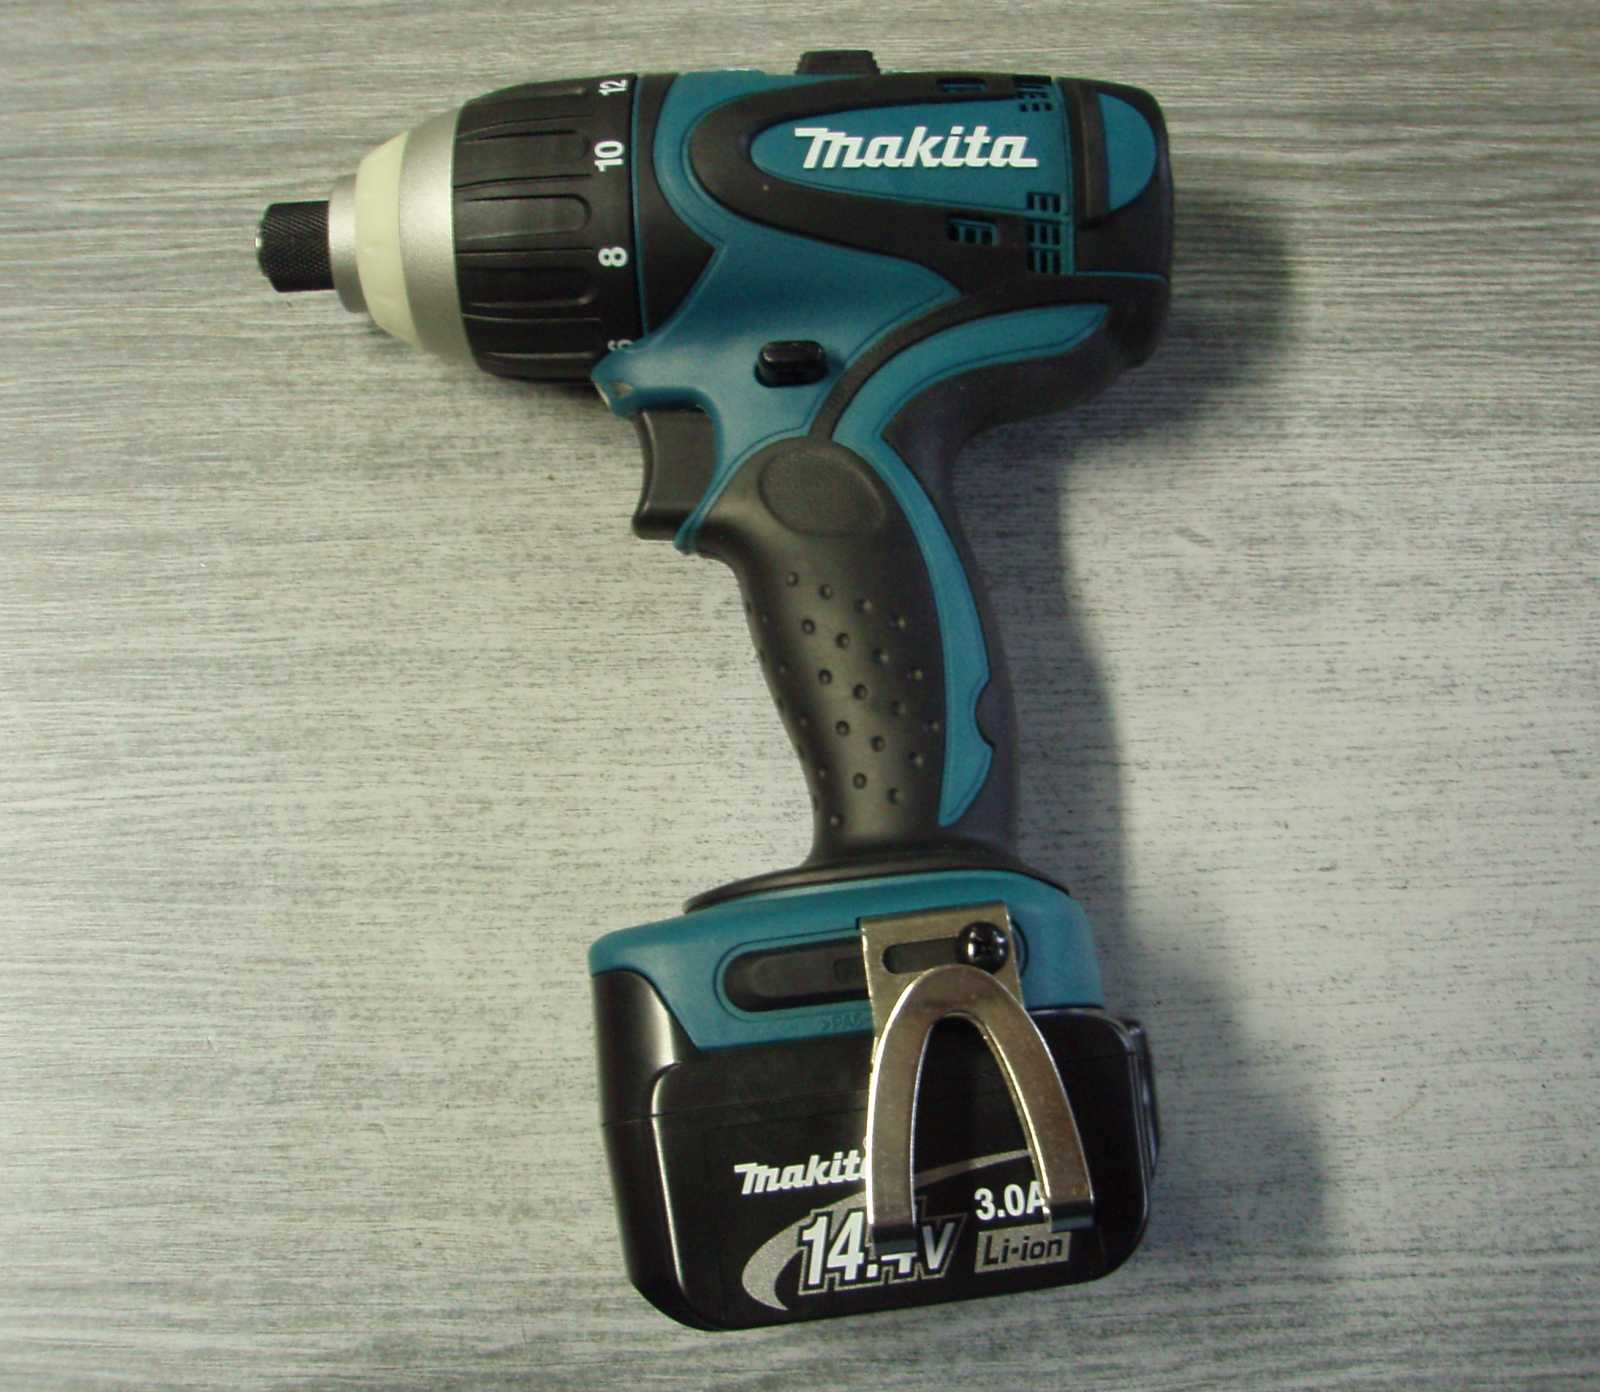 Makita - Wikipedia